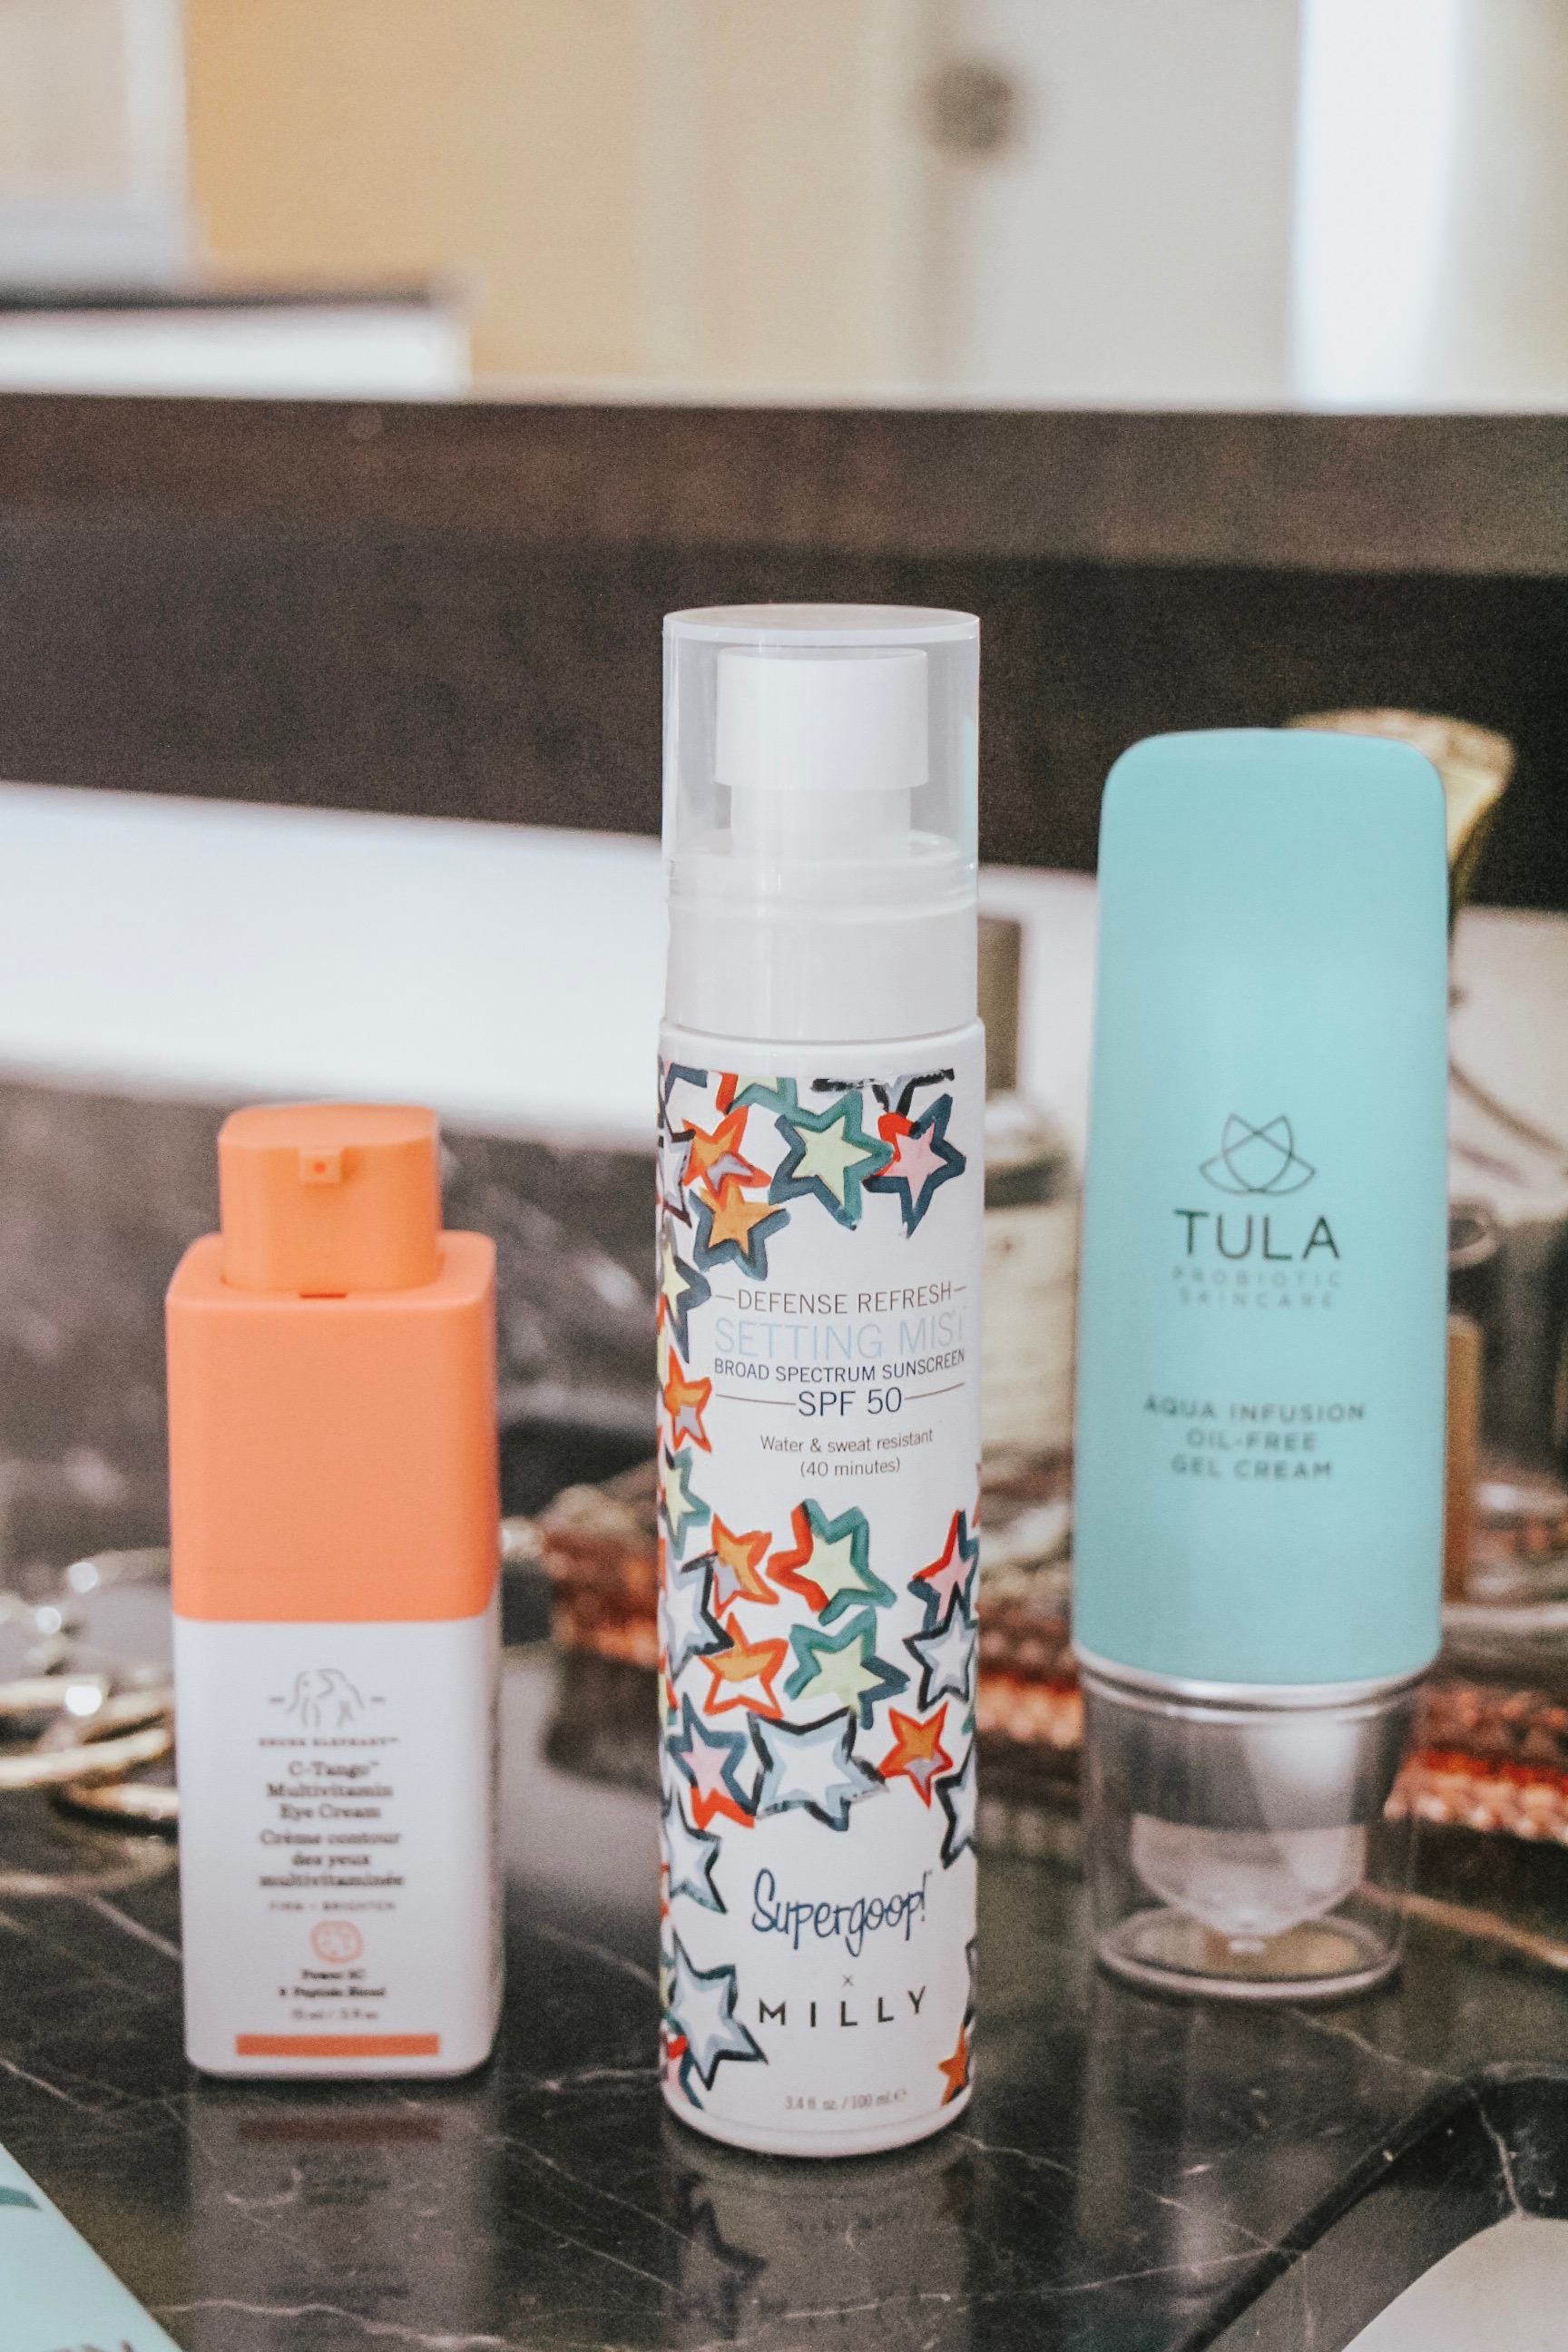 Top 6: Skincare and Hair Care Products to Try This Fall 2018 Drunk Elephant, Tula, Kerastase, Supergoop Review